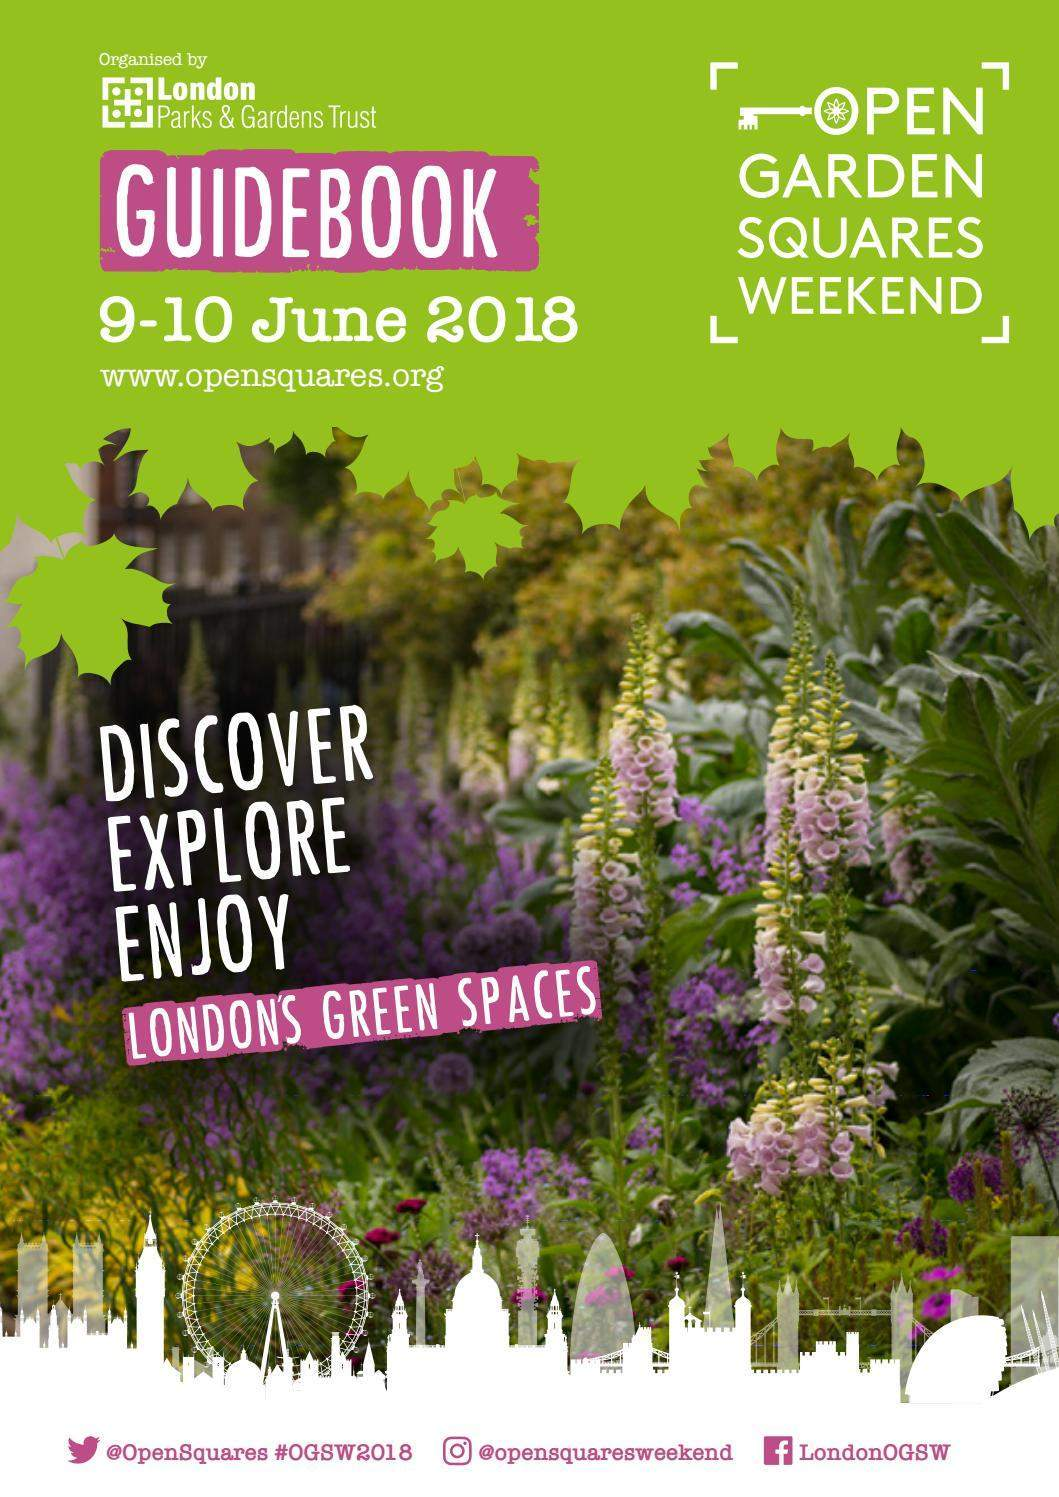 licht garten elegant open garden squares weekend guidebook 2018 by london parks of licht garten